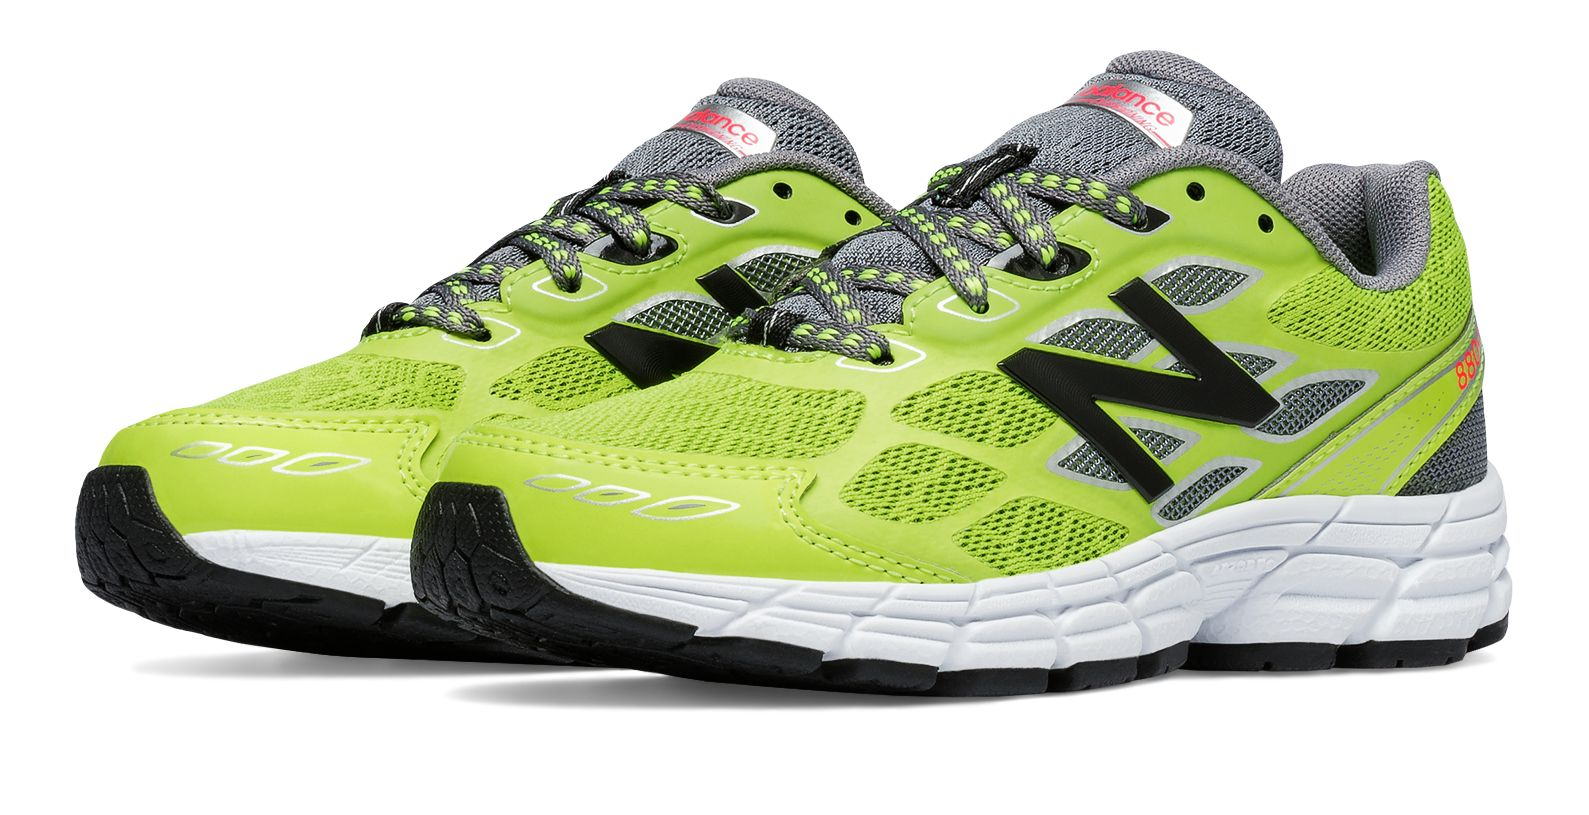 New Balance 880v 5 Grade - school Kids Shoes Yellow